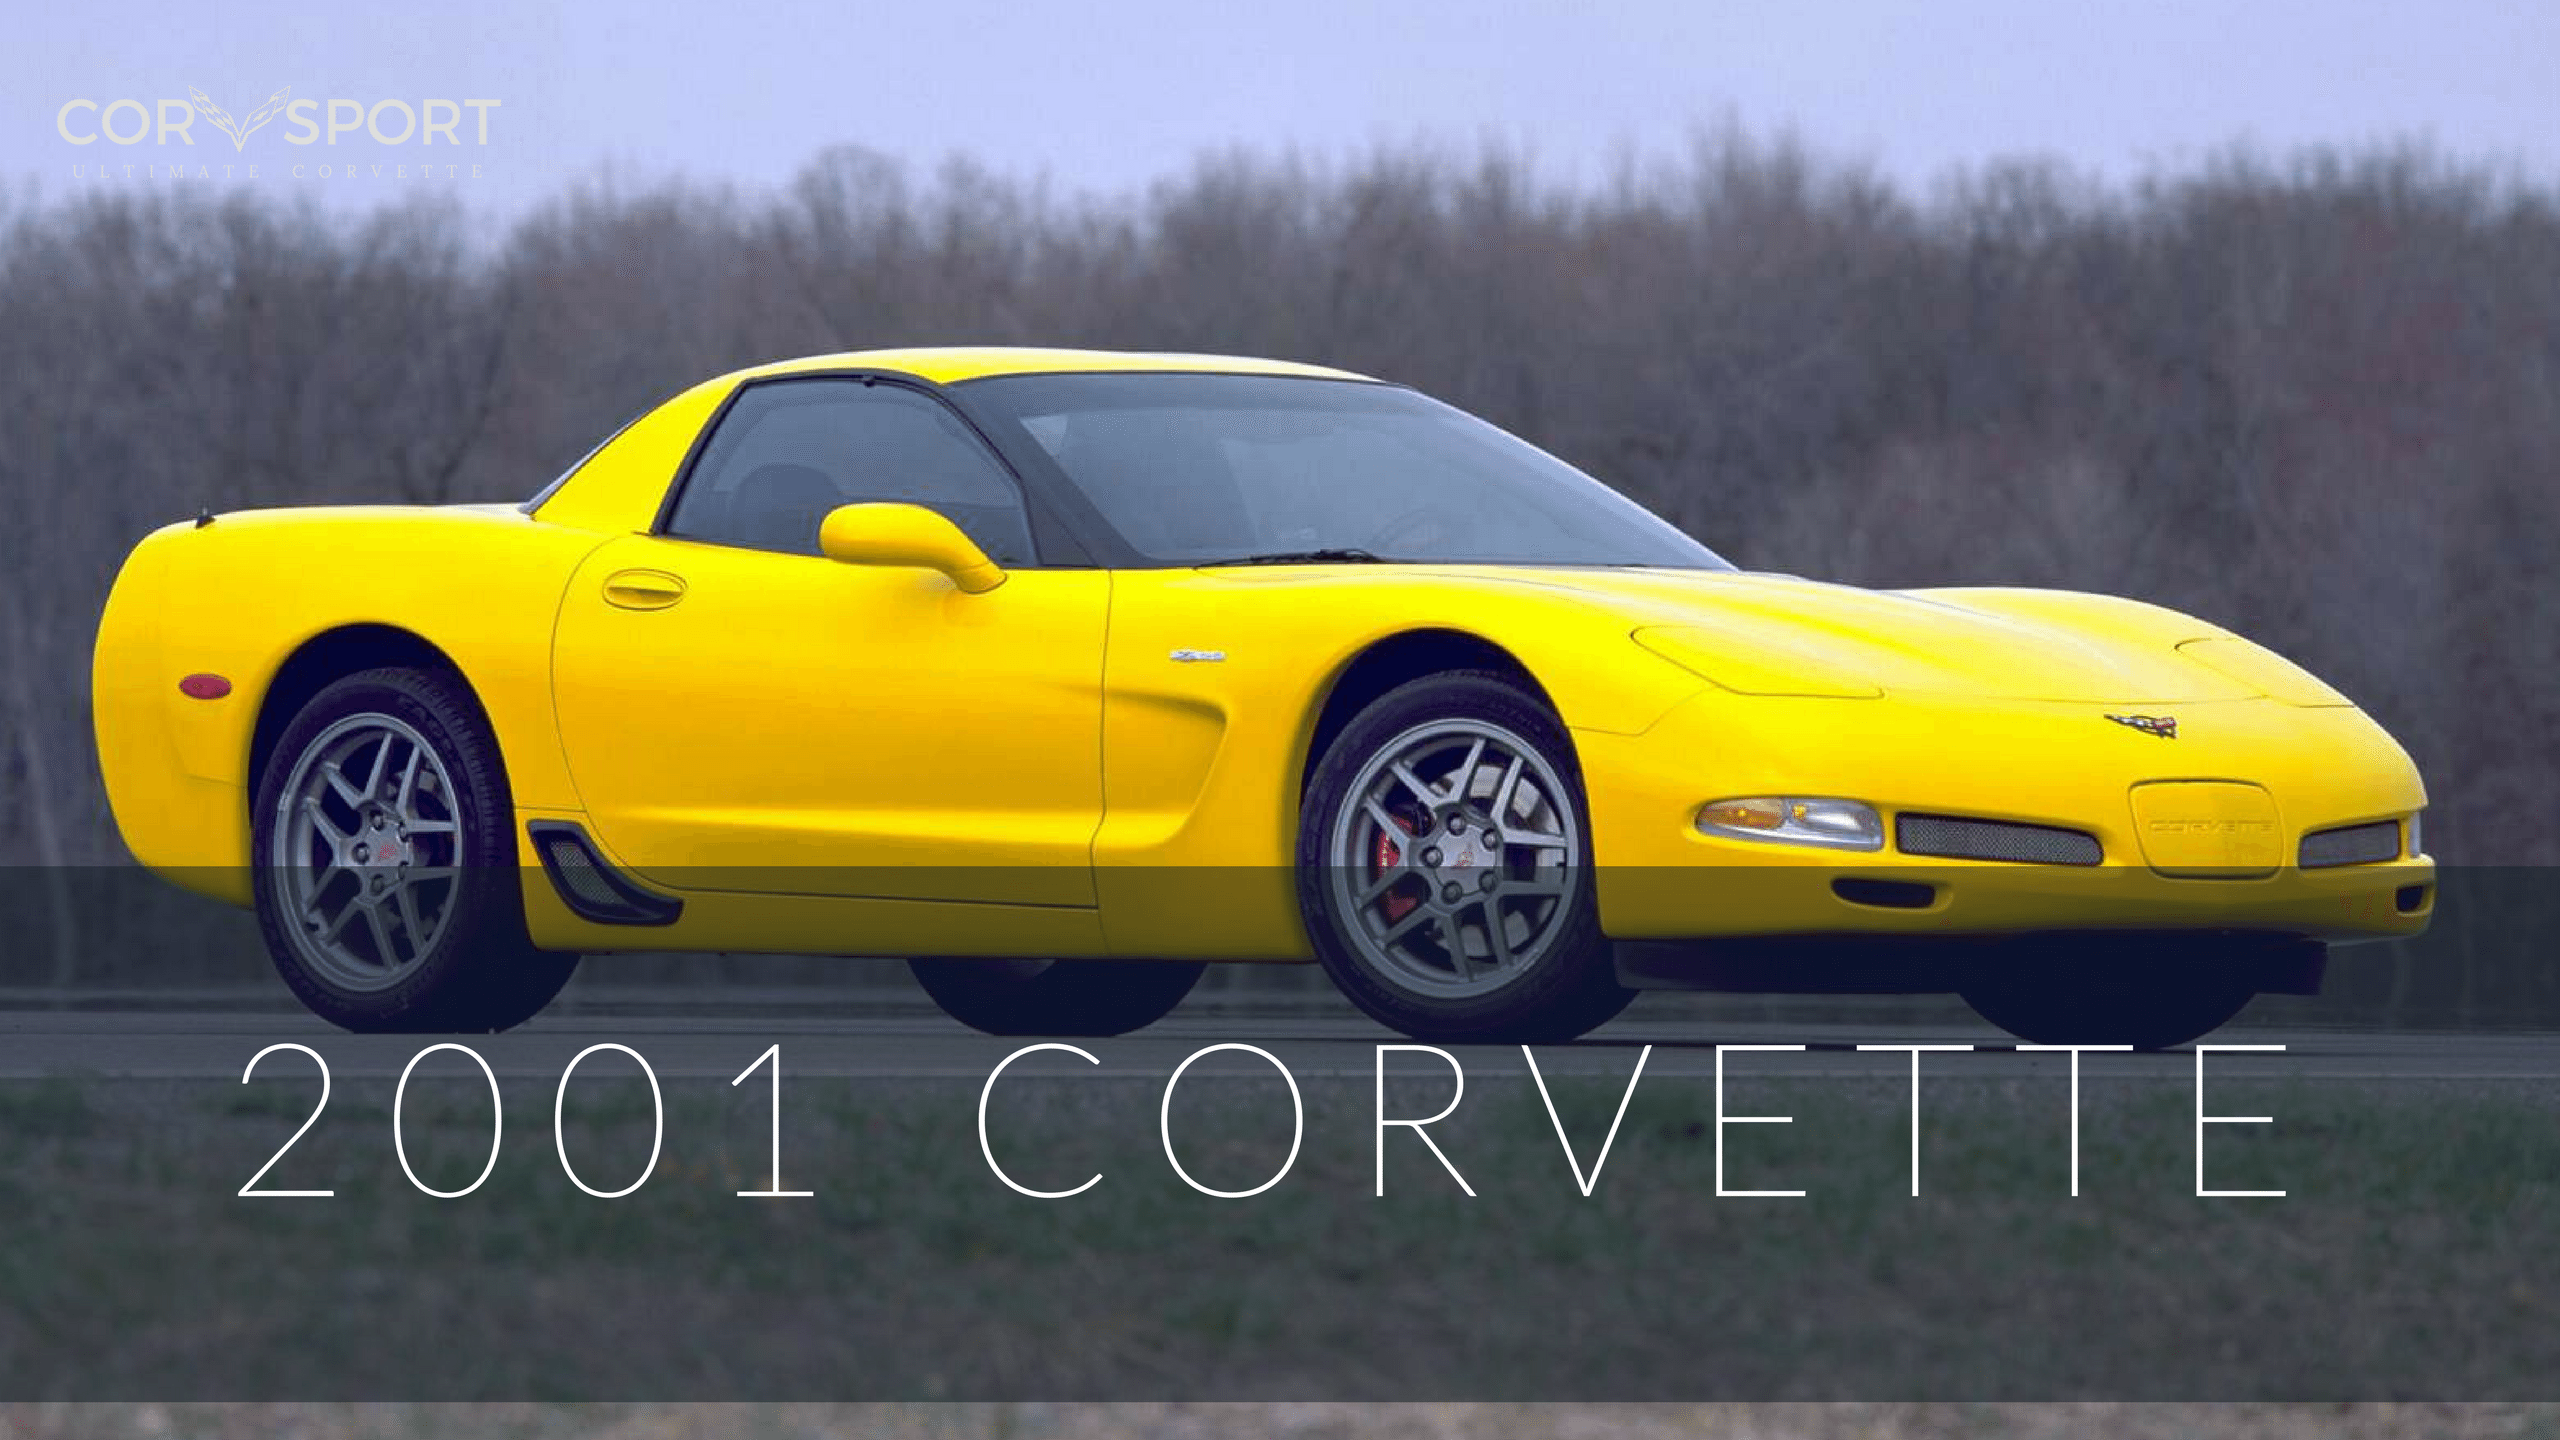 2001 c5 corvette ultimate guide overview specs vin info rh corvsport com Chevrolet Corvette Stingray Chevrolet Corvette Stingray